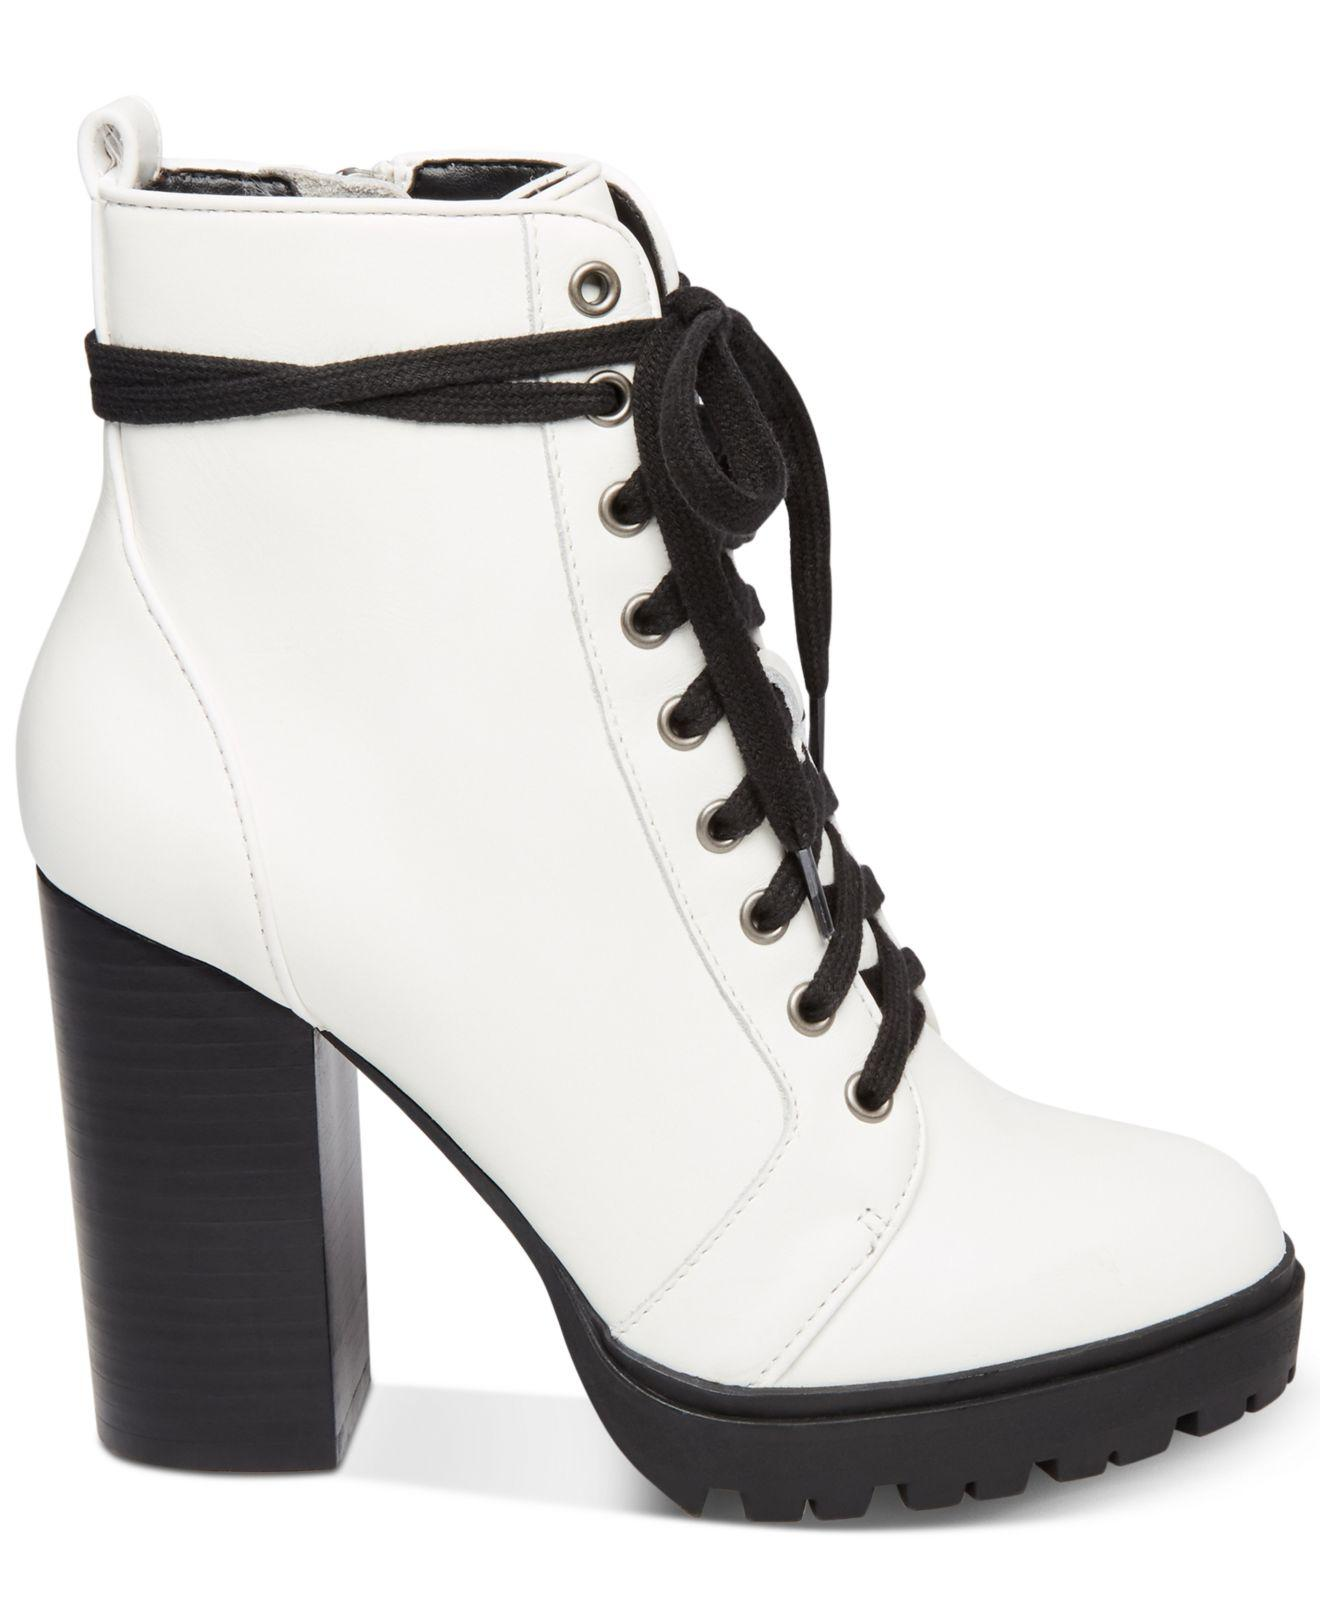 03ca9cb24df Lyst - Steve Madden Women s Laurie Platform Lace-up Booties